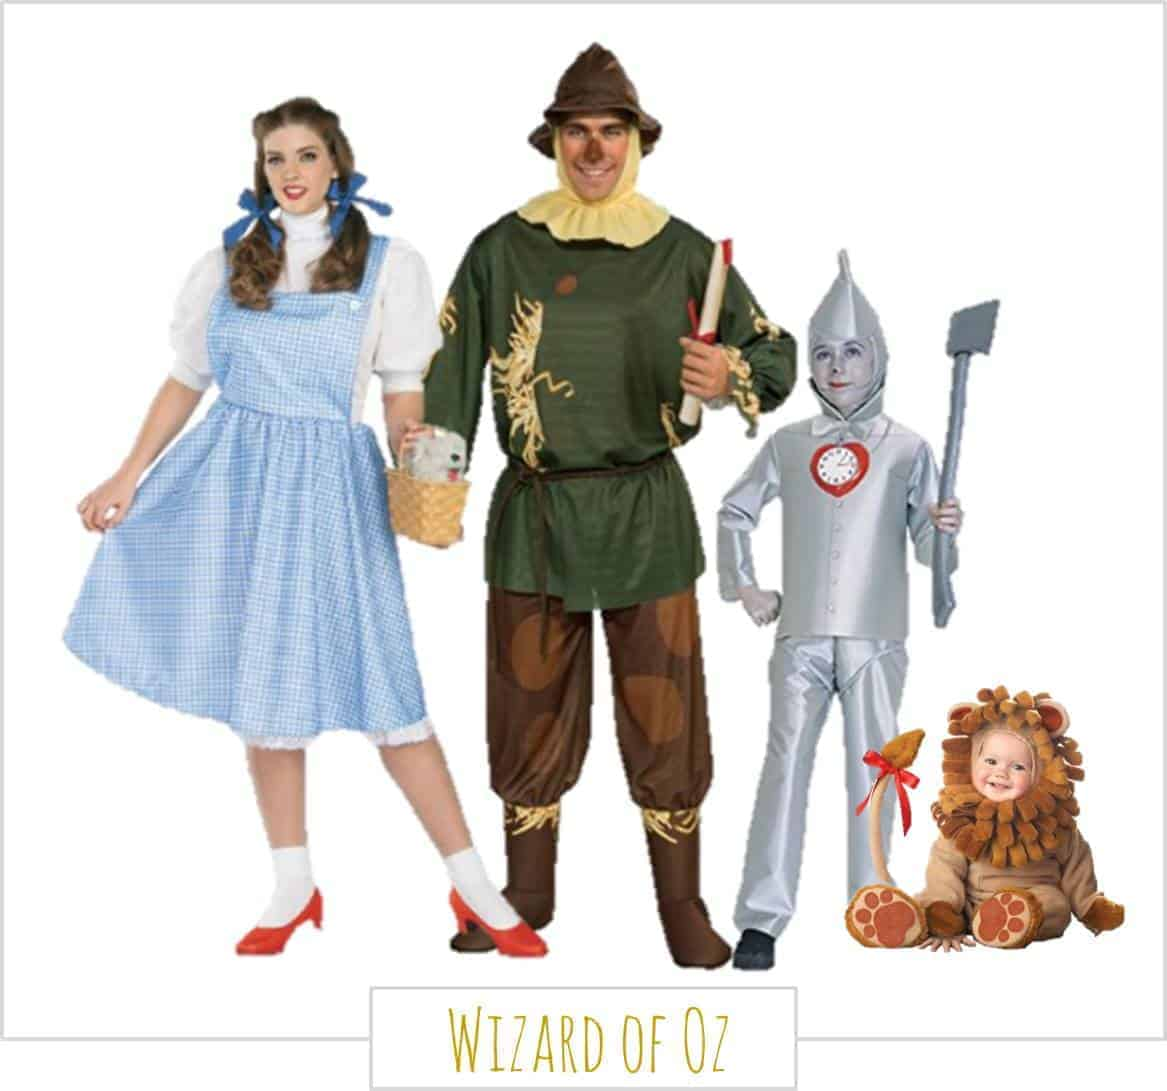 The Wizard of Oz,  Halloween Costumes for the Whole Family